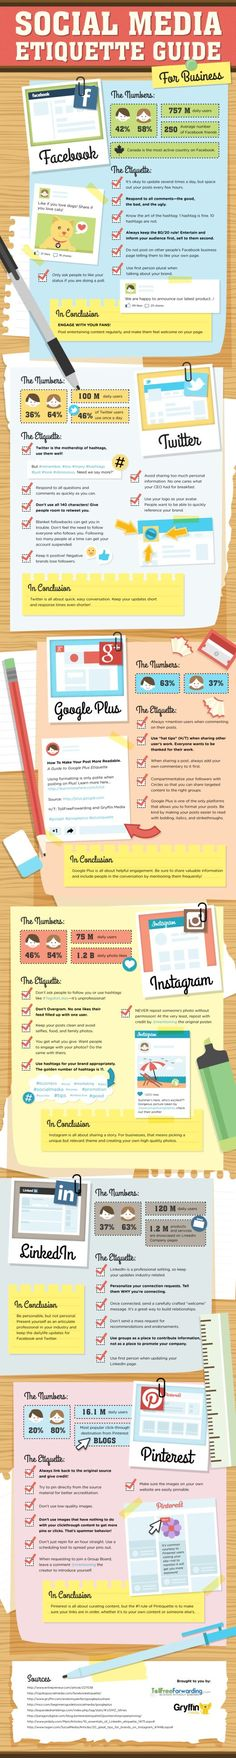 Social media -- These 15 Social Media Ps & Qs May Surprise You [Infographic] | via #BornToBeSocial - Pinterest Marketing